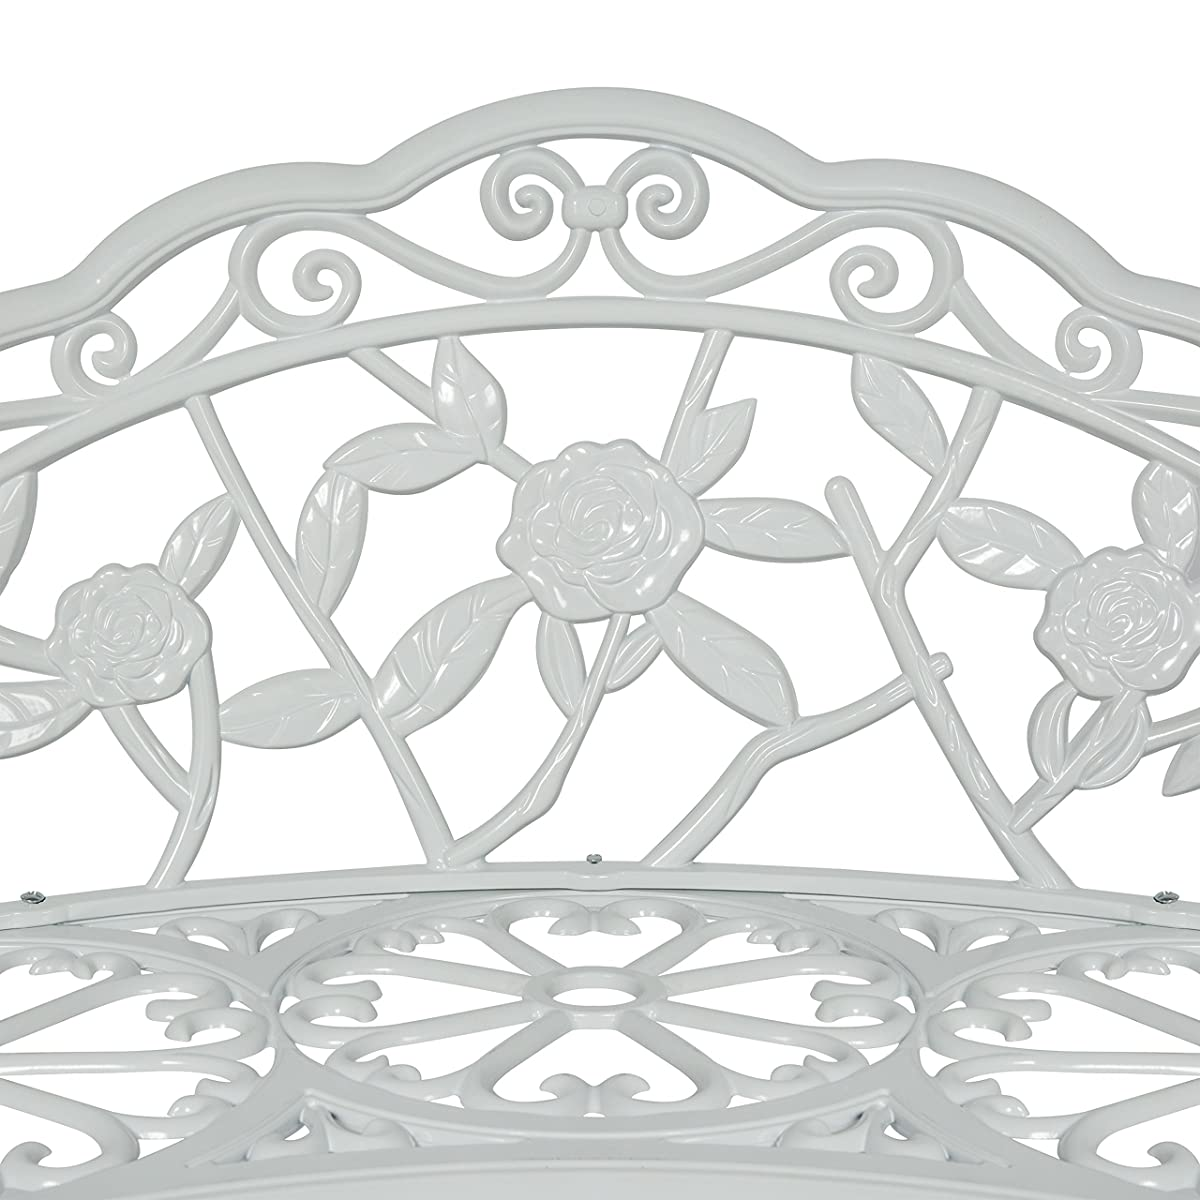 Best Choice Products Floral Rose Accented Metal Garden Patio Bench w/Antique Finish - White